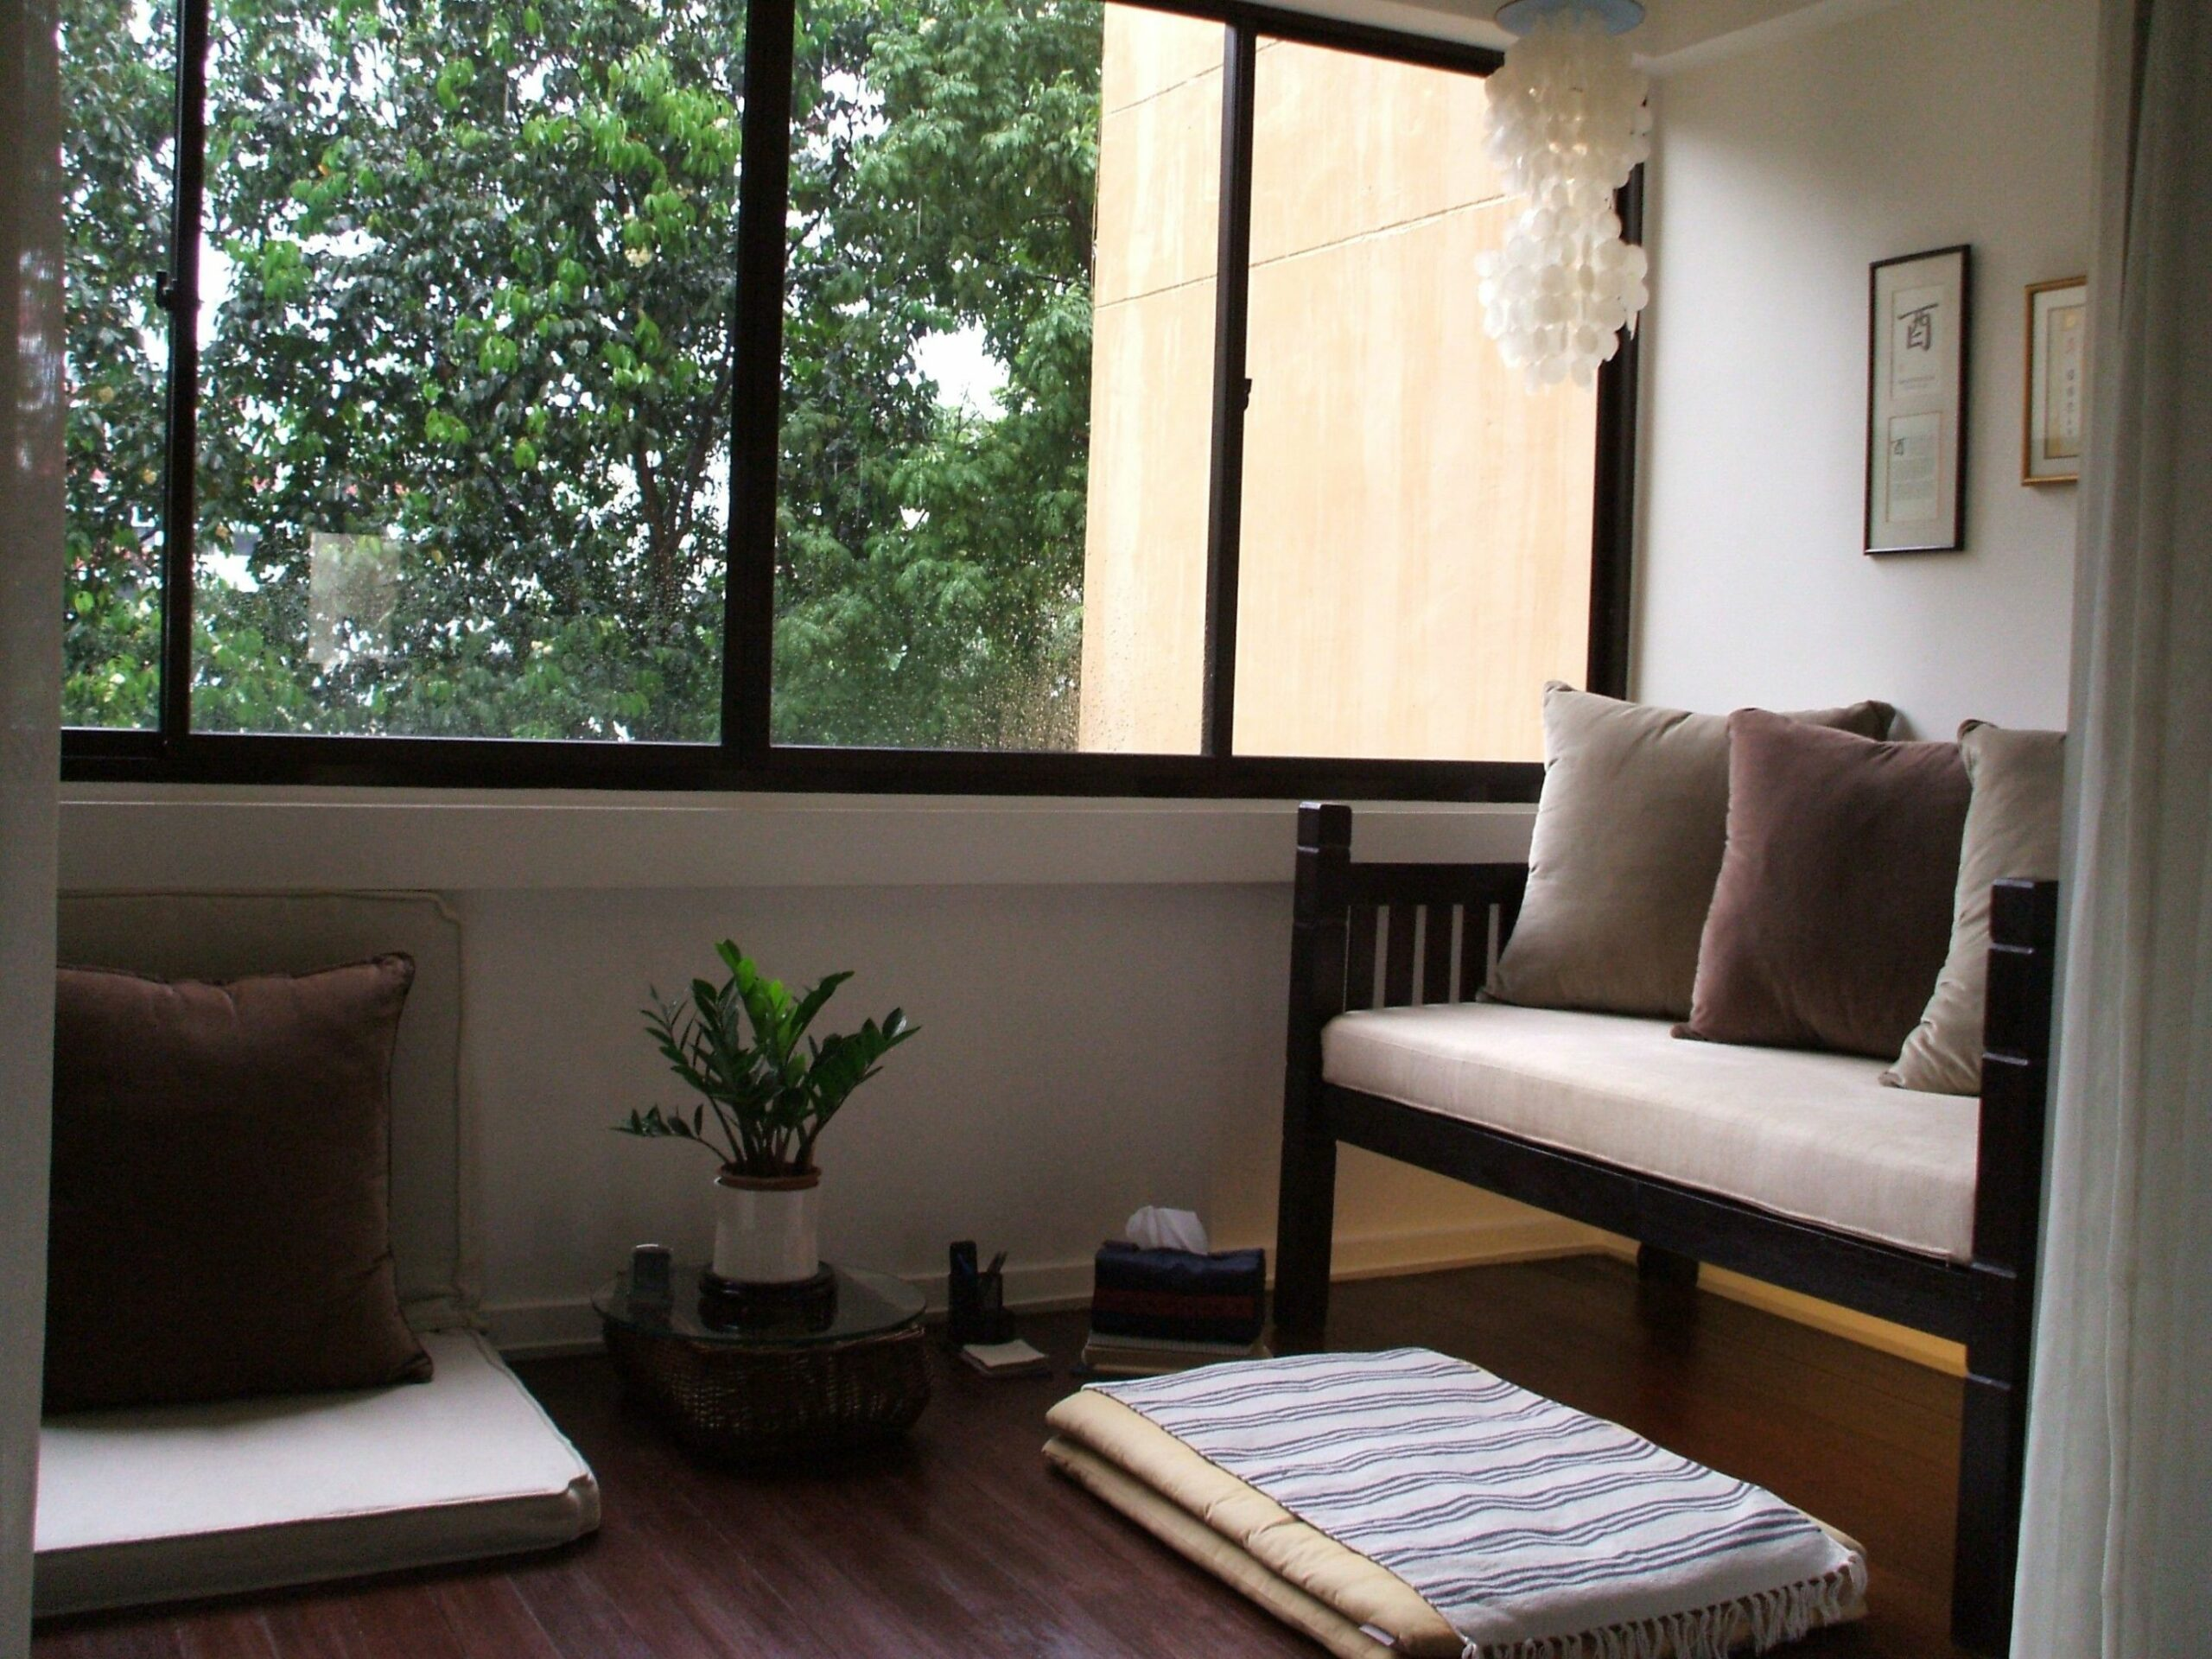 hdb balcony ideas - Google Search | Indian living rooms, Living ...